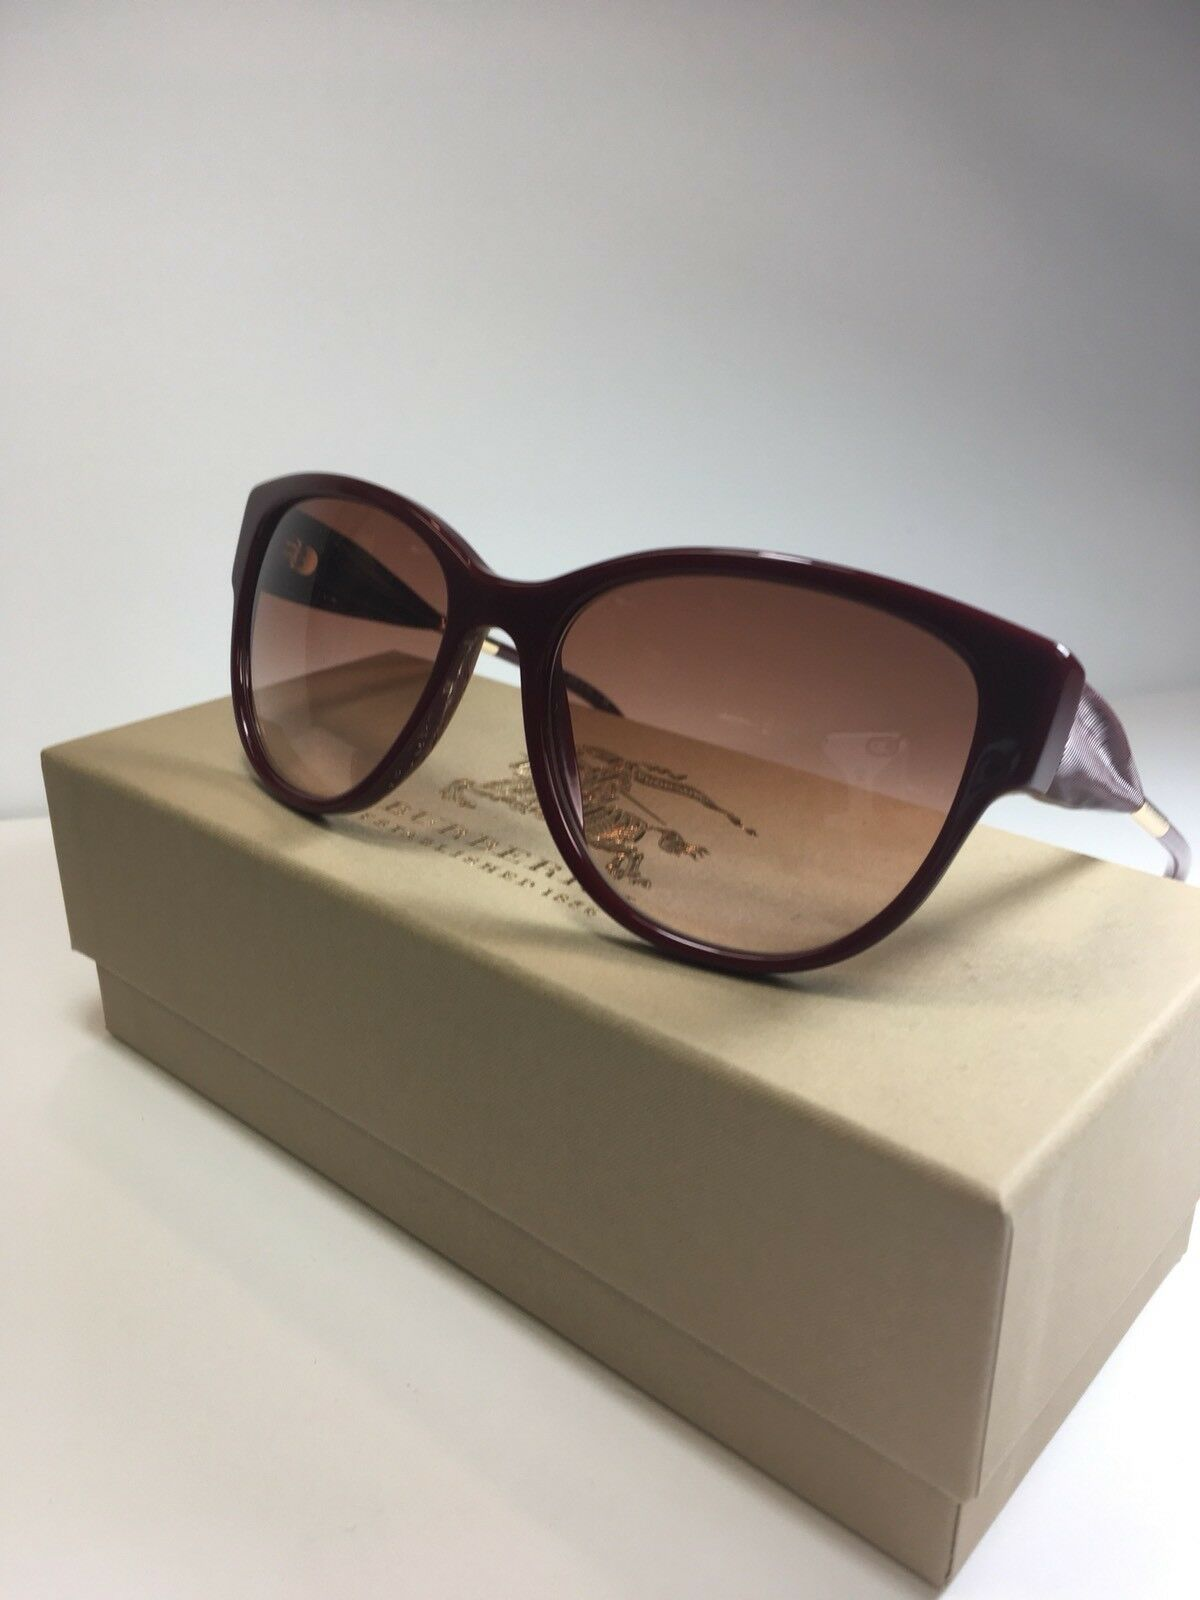 d907e734fad5 Burberry Women s Sunglasses B 4190 3403 13 Red Authentic B4190 56-17 for  sale online